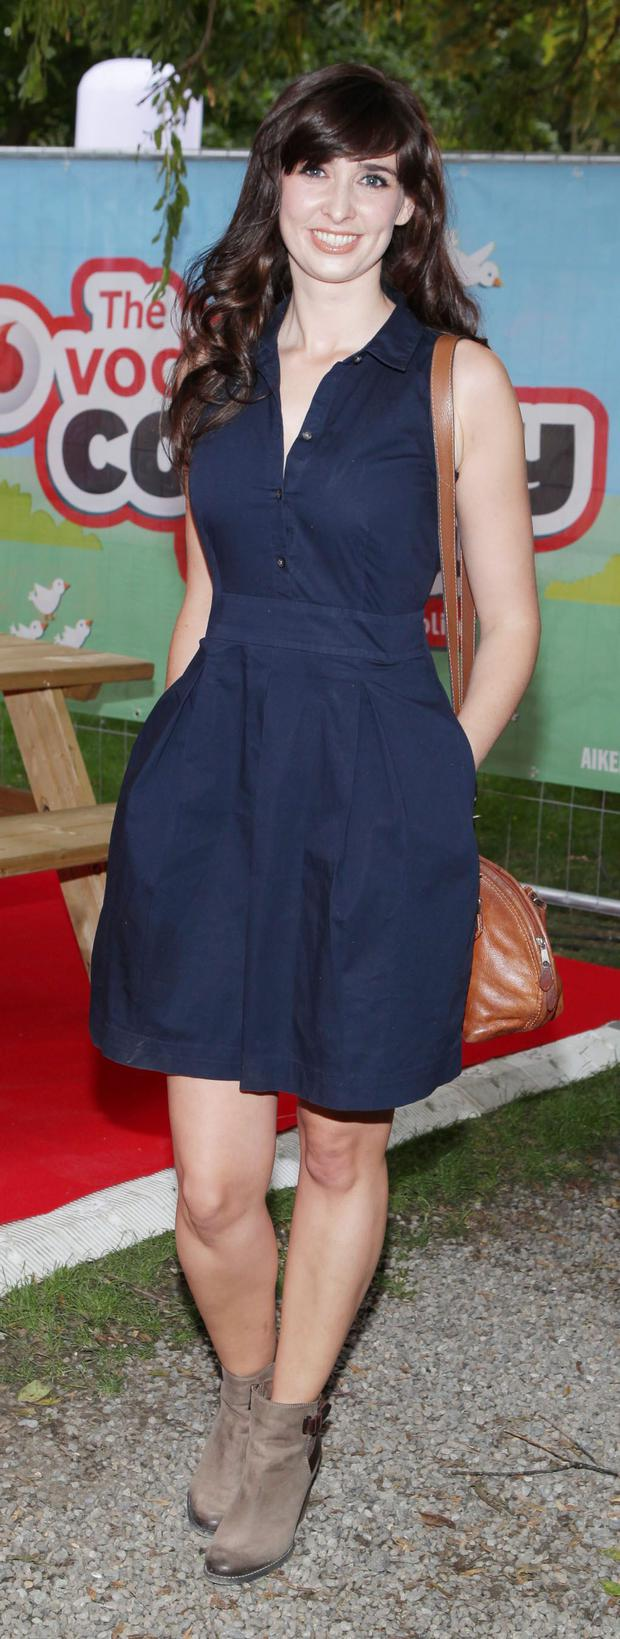 Aoibhinn Ni Shuilleabhain at the Opening Night of the Vodafone Comedy Festival at the Iveagh Gardens Dublin